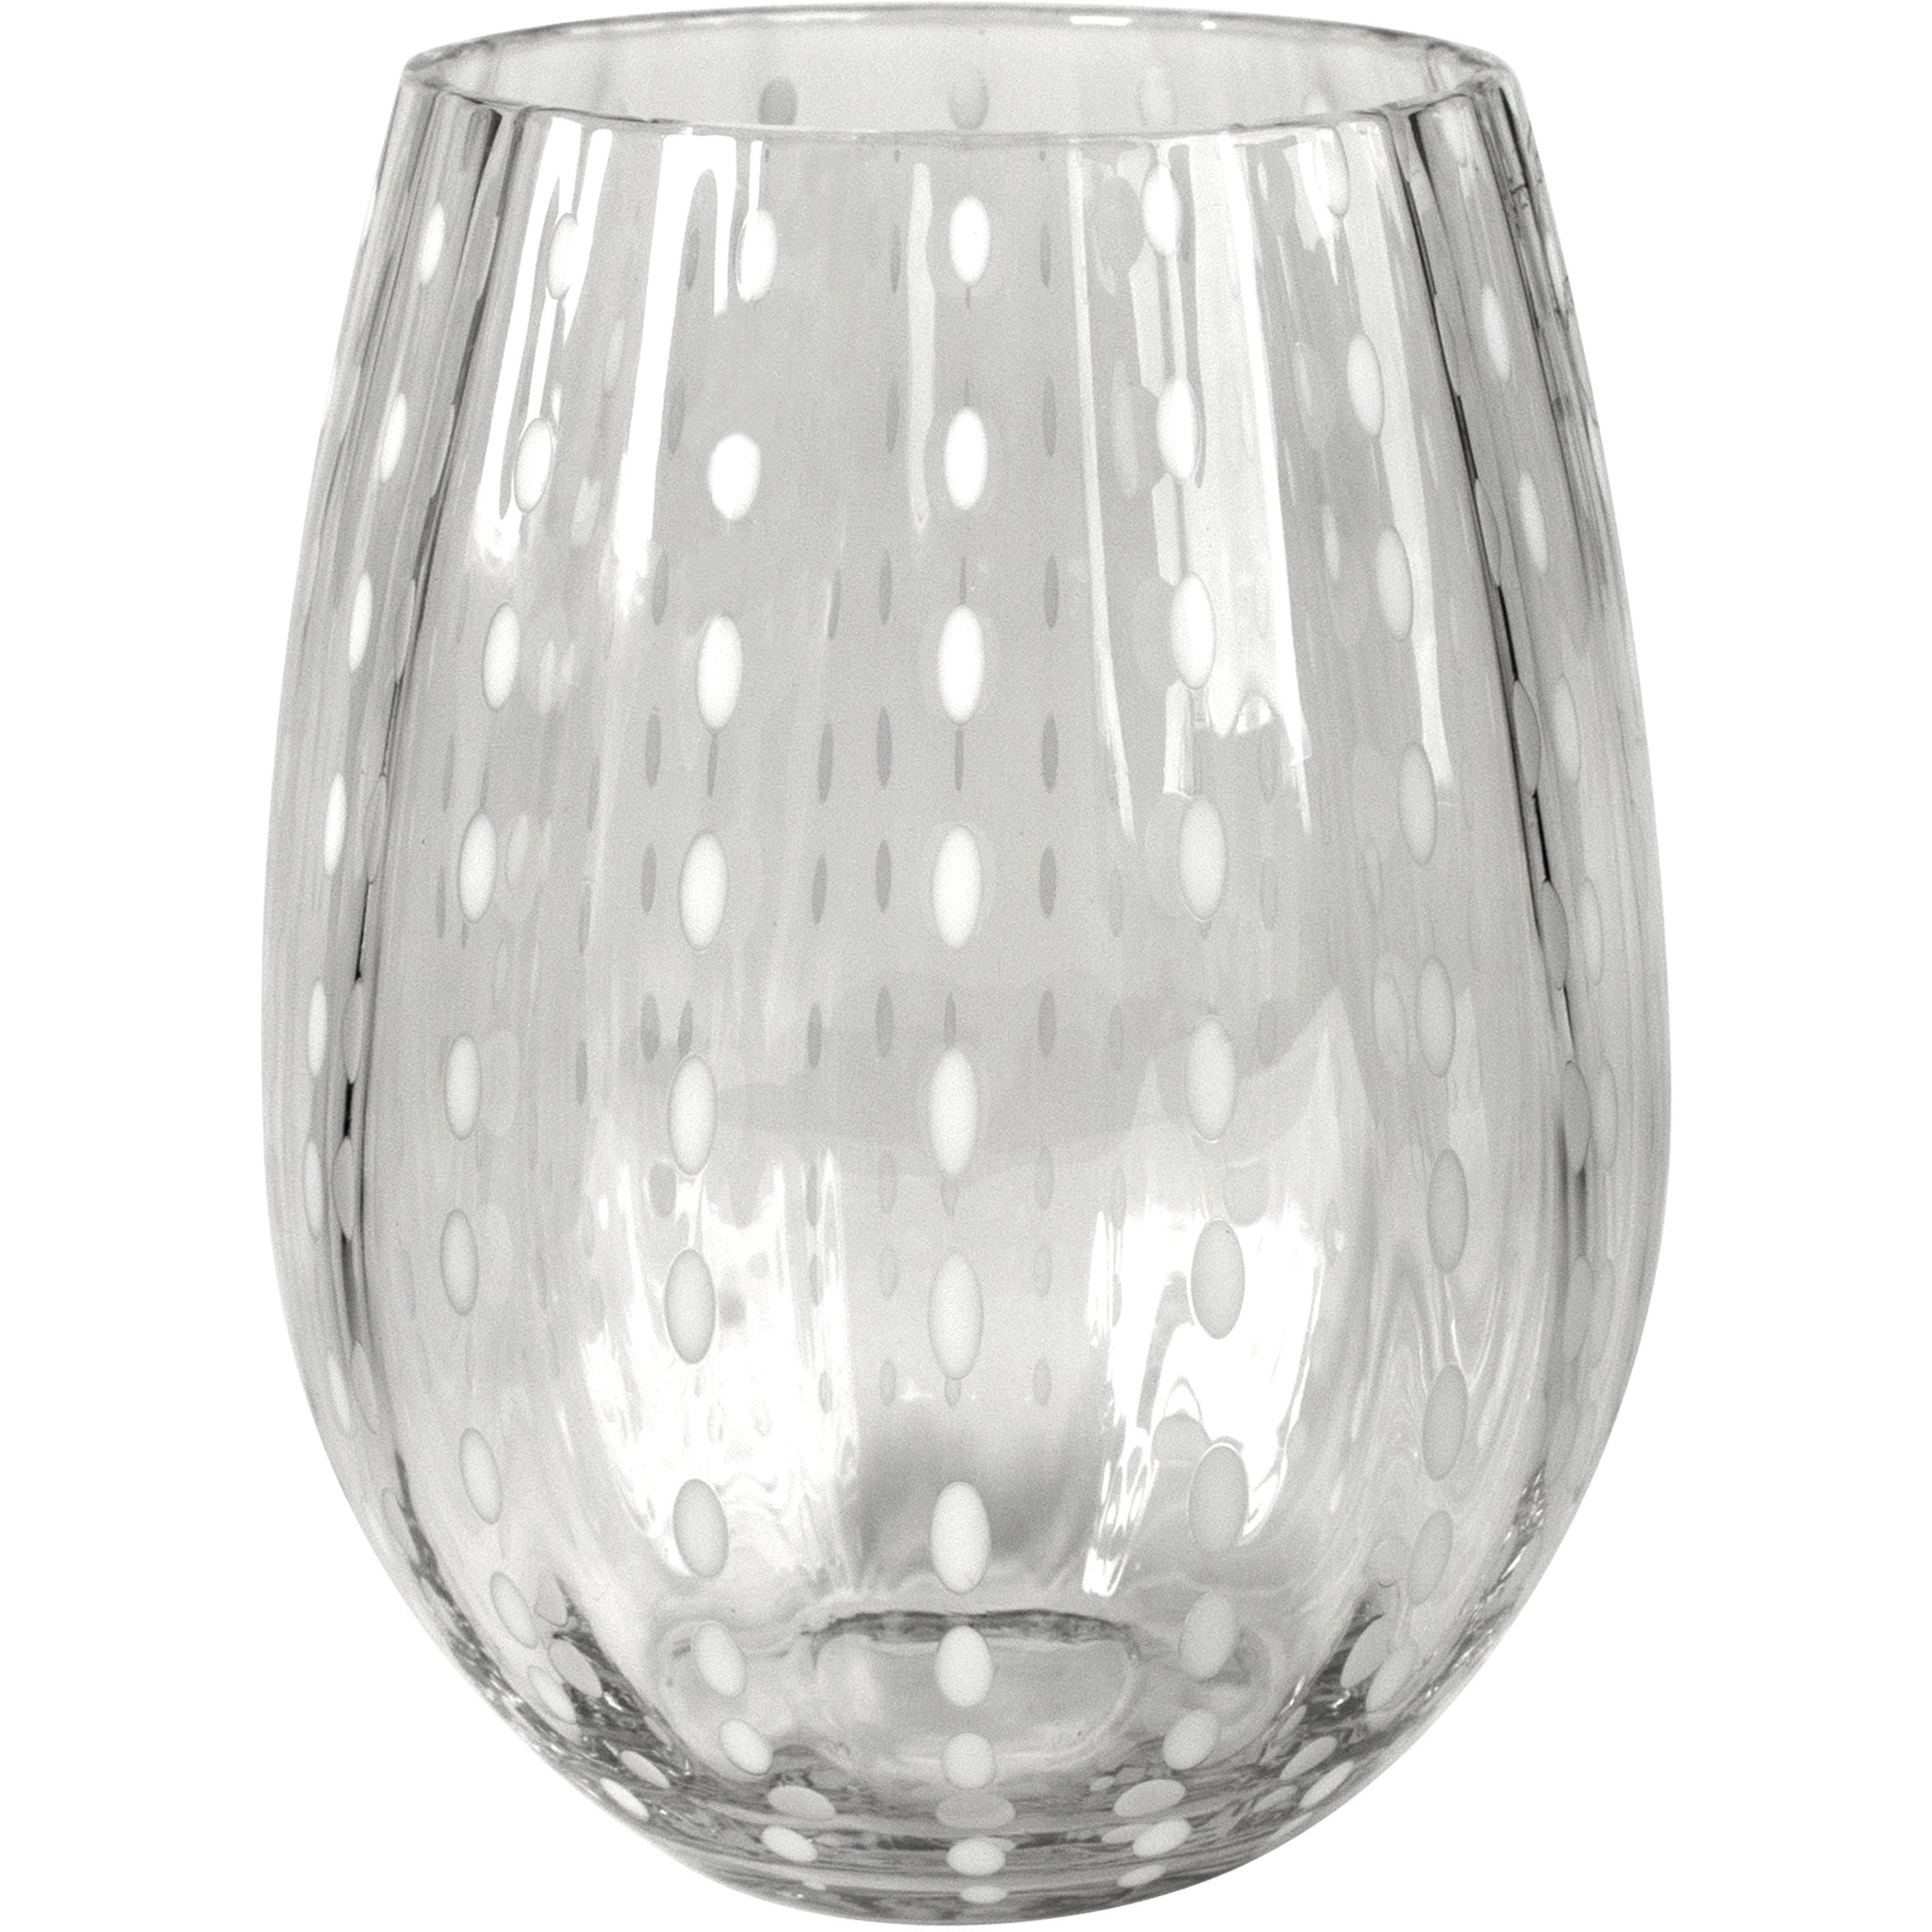 Artland Cambria Clear Stemless Tumbler Drinking Glass, 17 Ounce